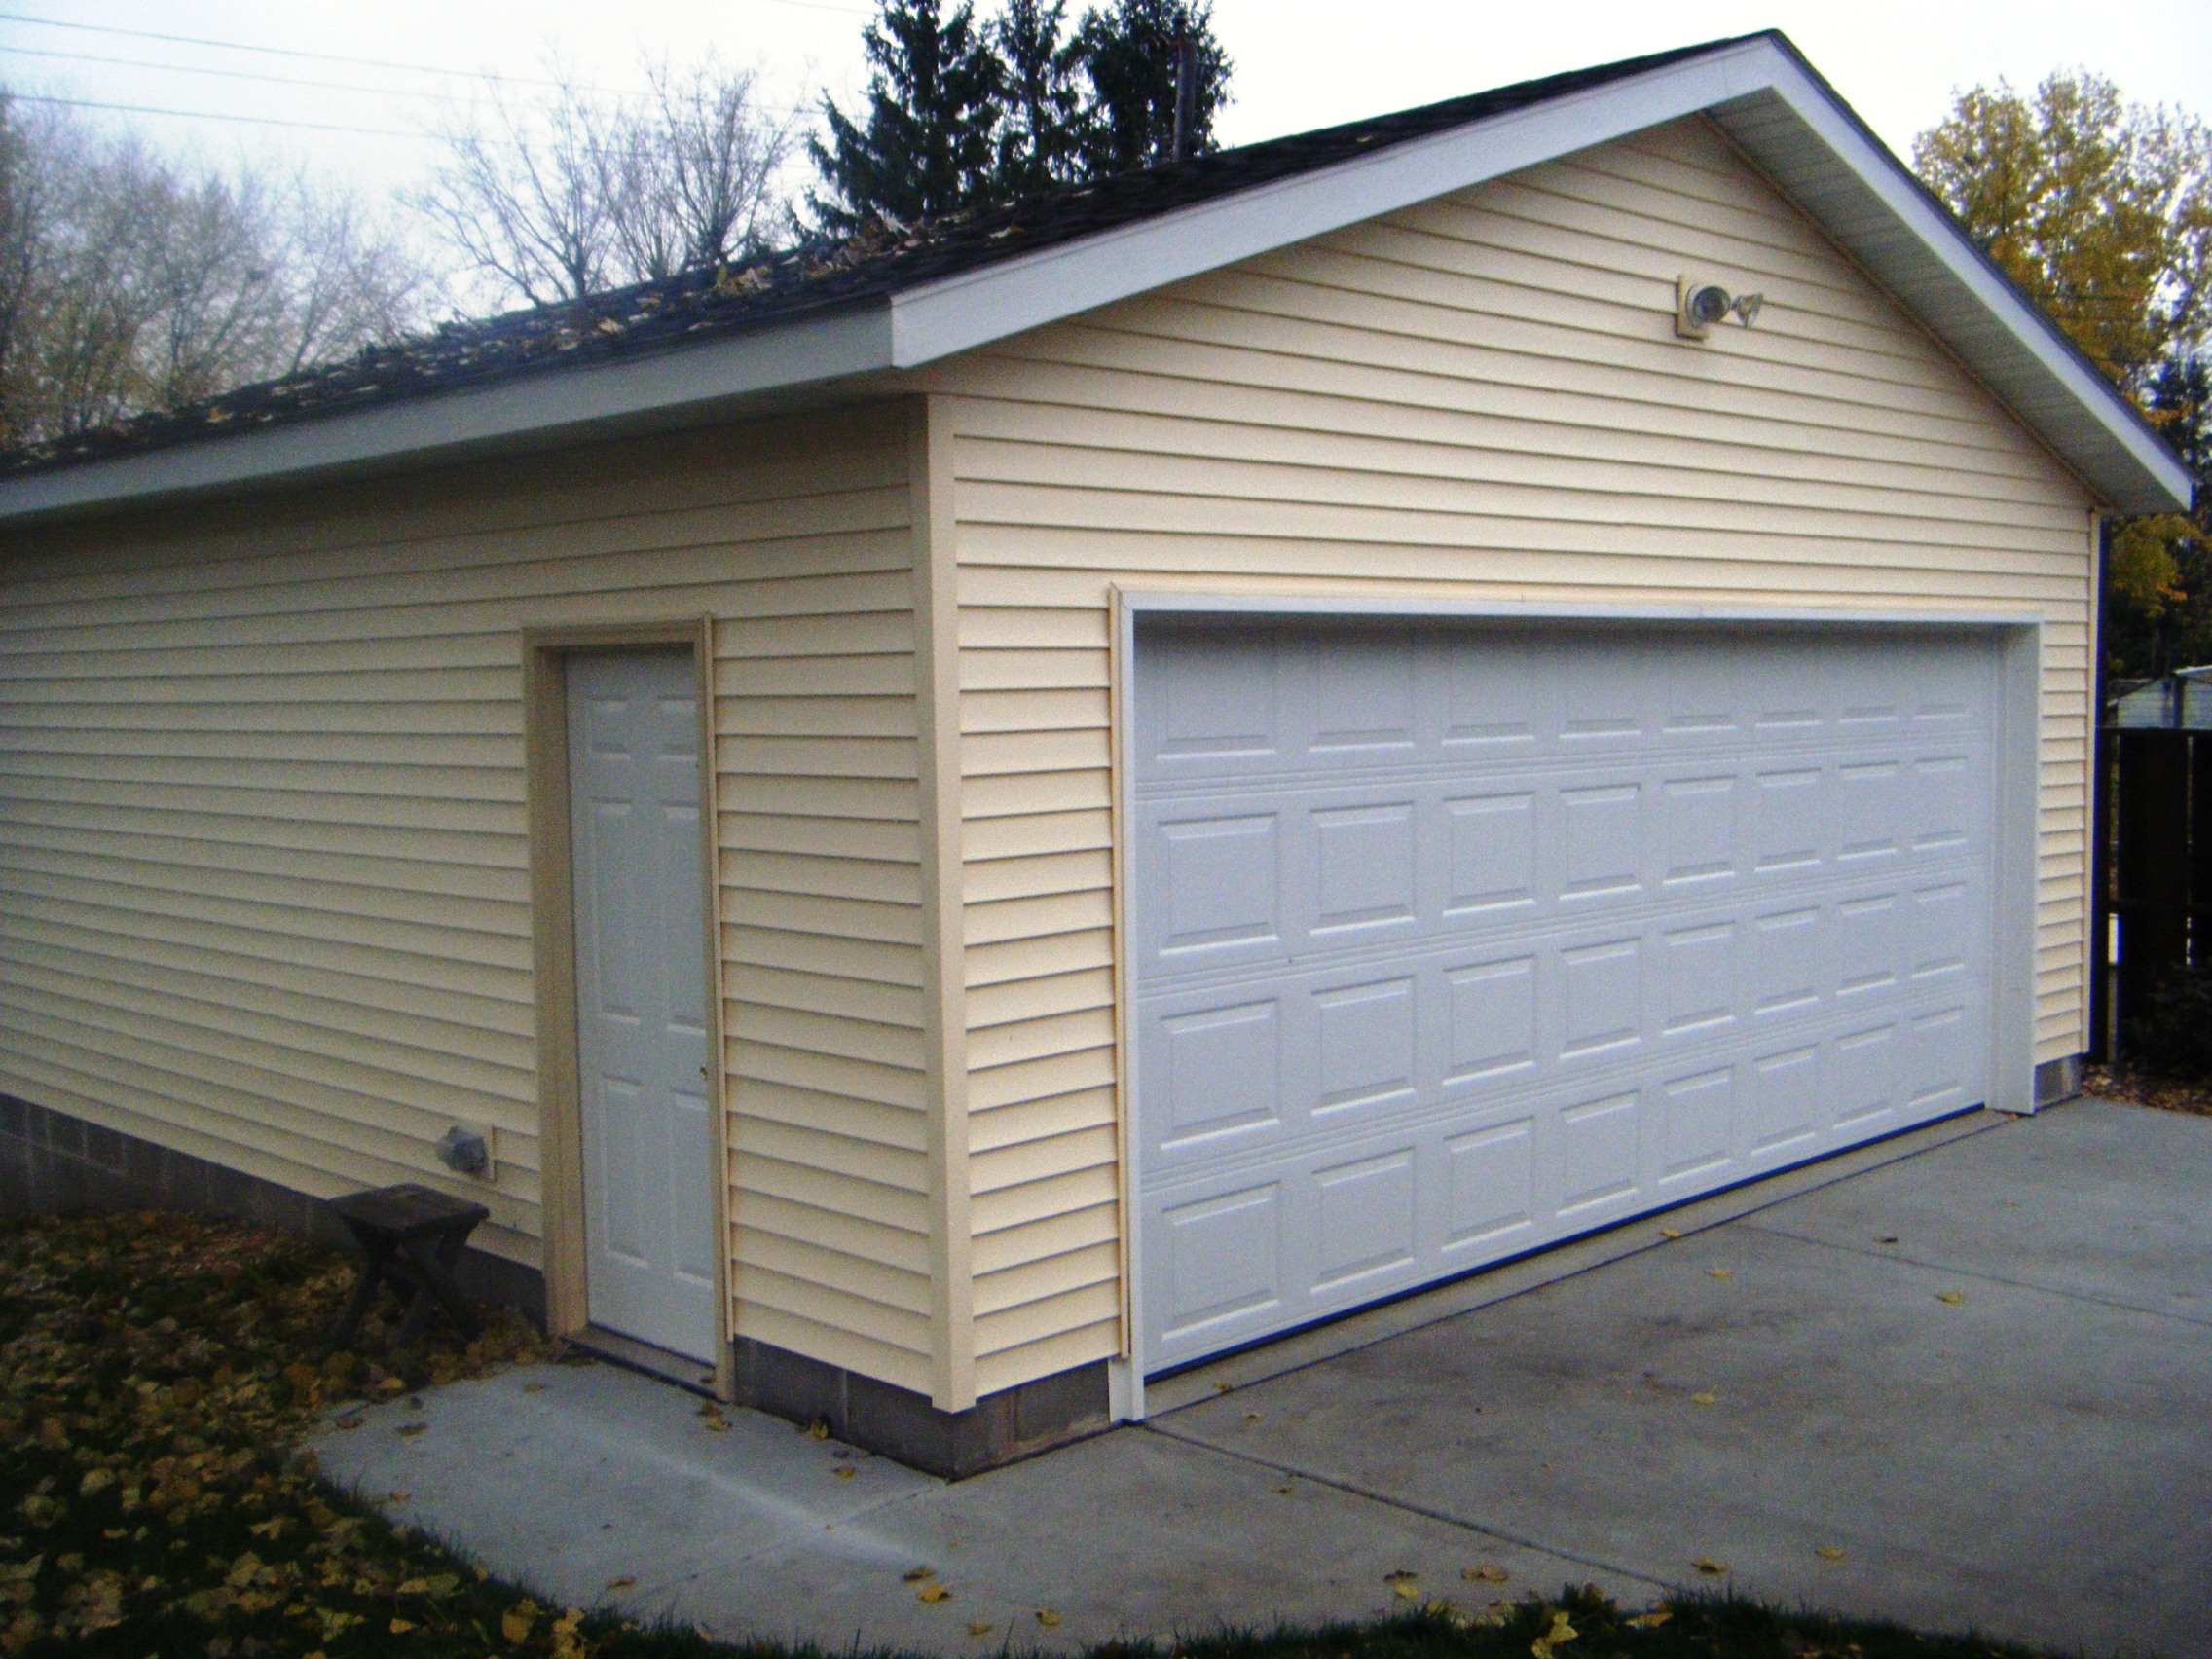 How much to build a garage on side of the house uk - Building a new home ideas ...